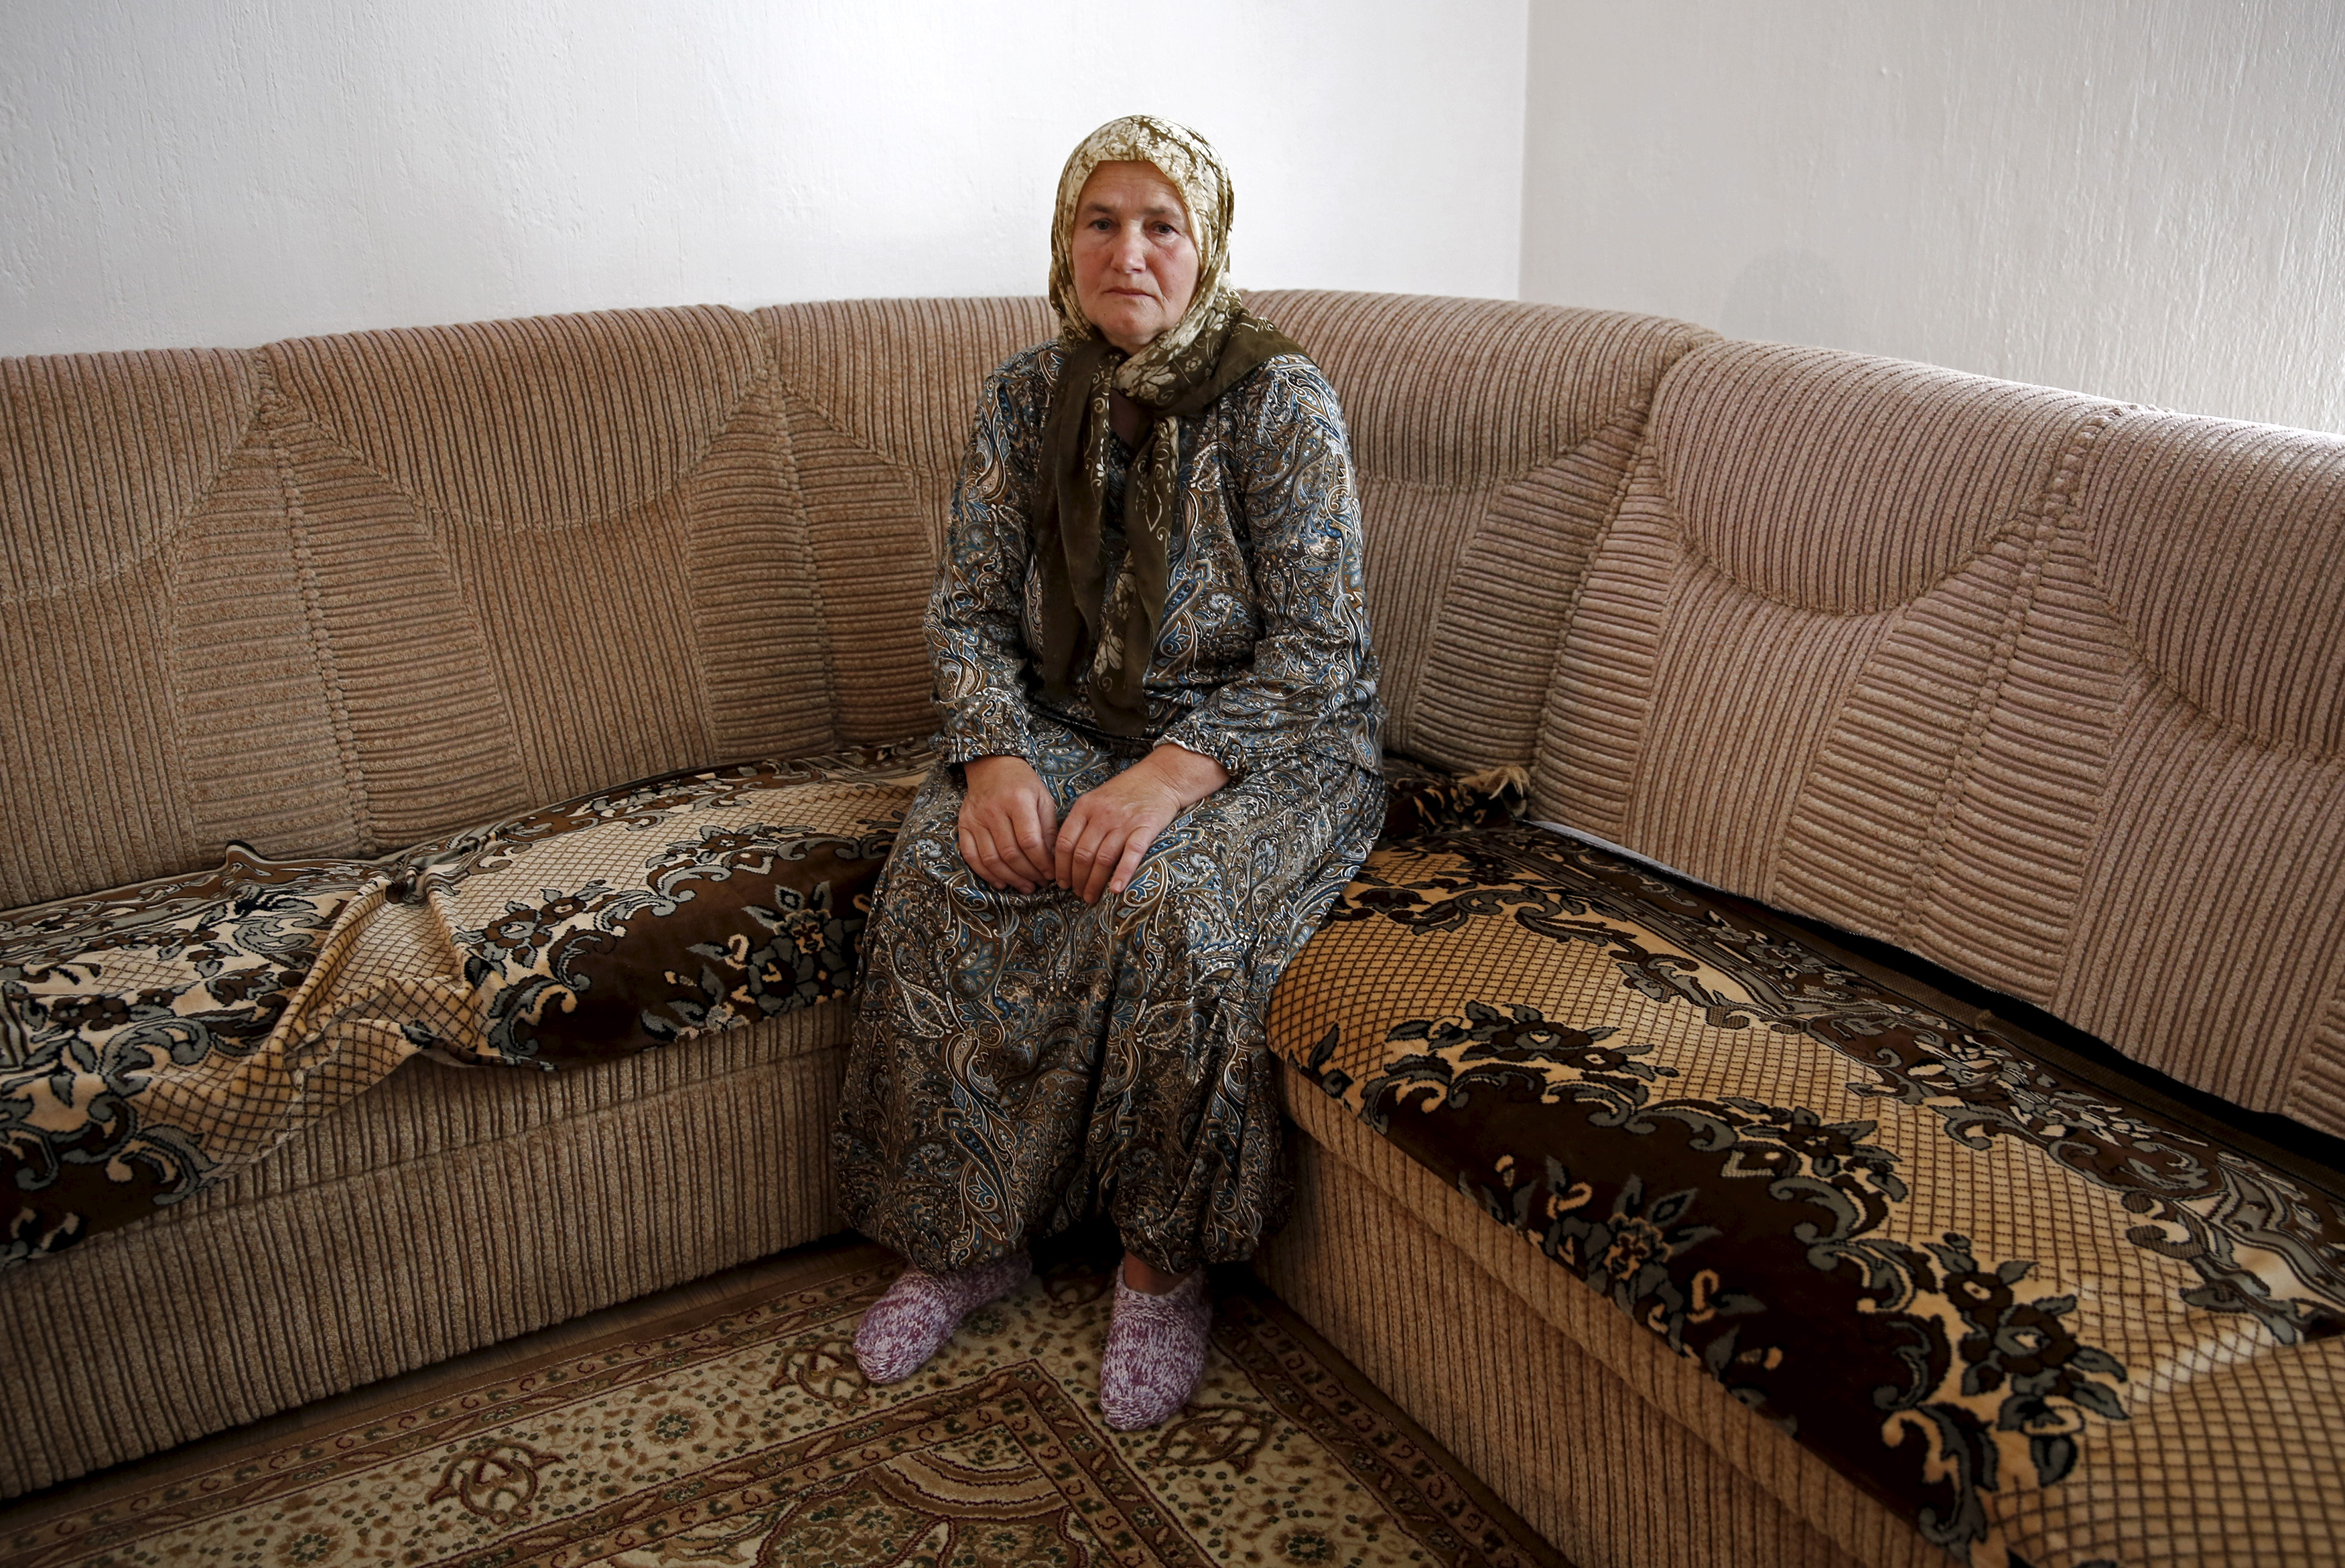 "Nura Sulic poses for a picture in her home in Zivinice, Bosnia and Herzegovina, July 1, 2015. Nura is among several thousand women still searching for the remains of their closest relatives 20 years after the Srebrenica massacre of 8,000 Muslim men and boys. Nura Sulic, is still searching for her son. She lost 11 close family members. ""His photograph is all I have left of him. I pray to dear Allah to find at least one, smallest bone. Anything. So that we would both finally be at peace.""  Picture taken on July 1, 2015. REUTERS/Dado Ruvi - RTX1IUDT"